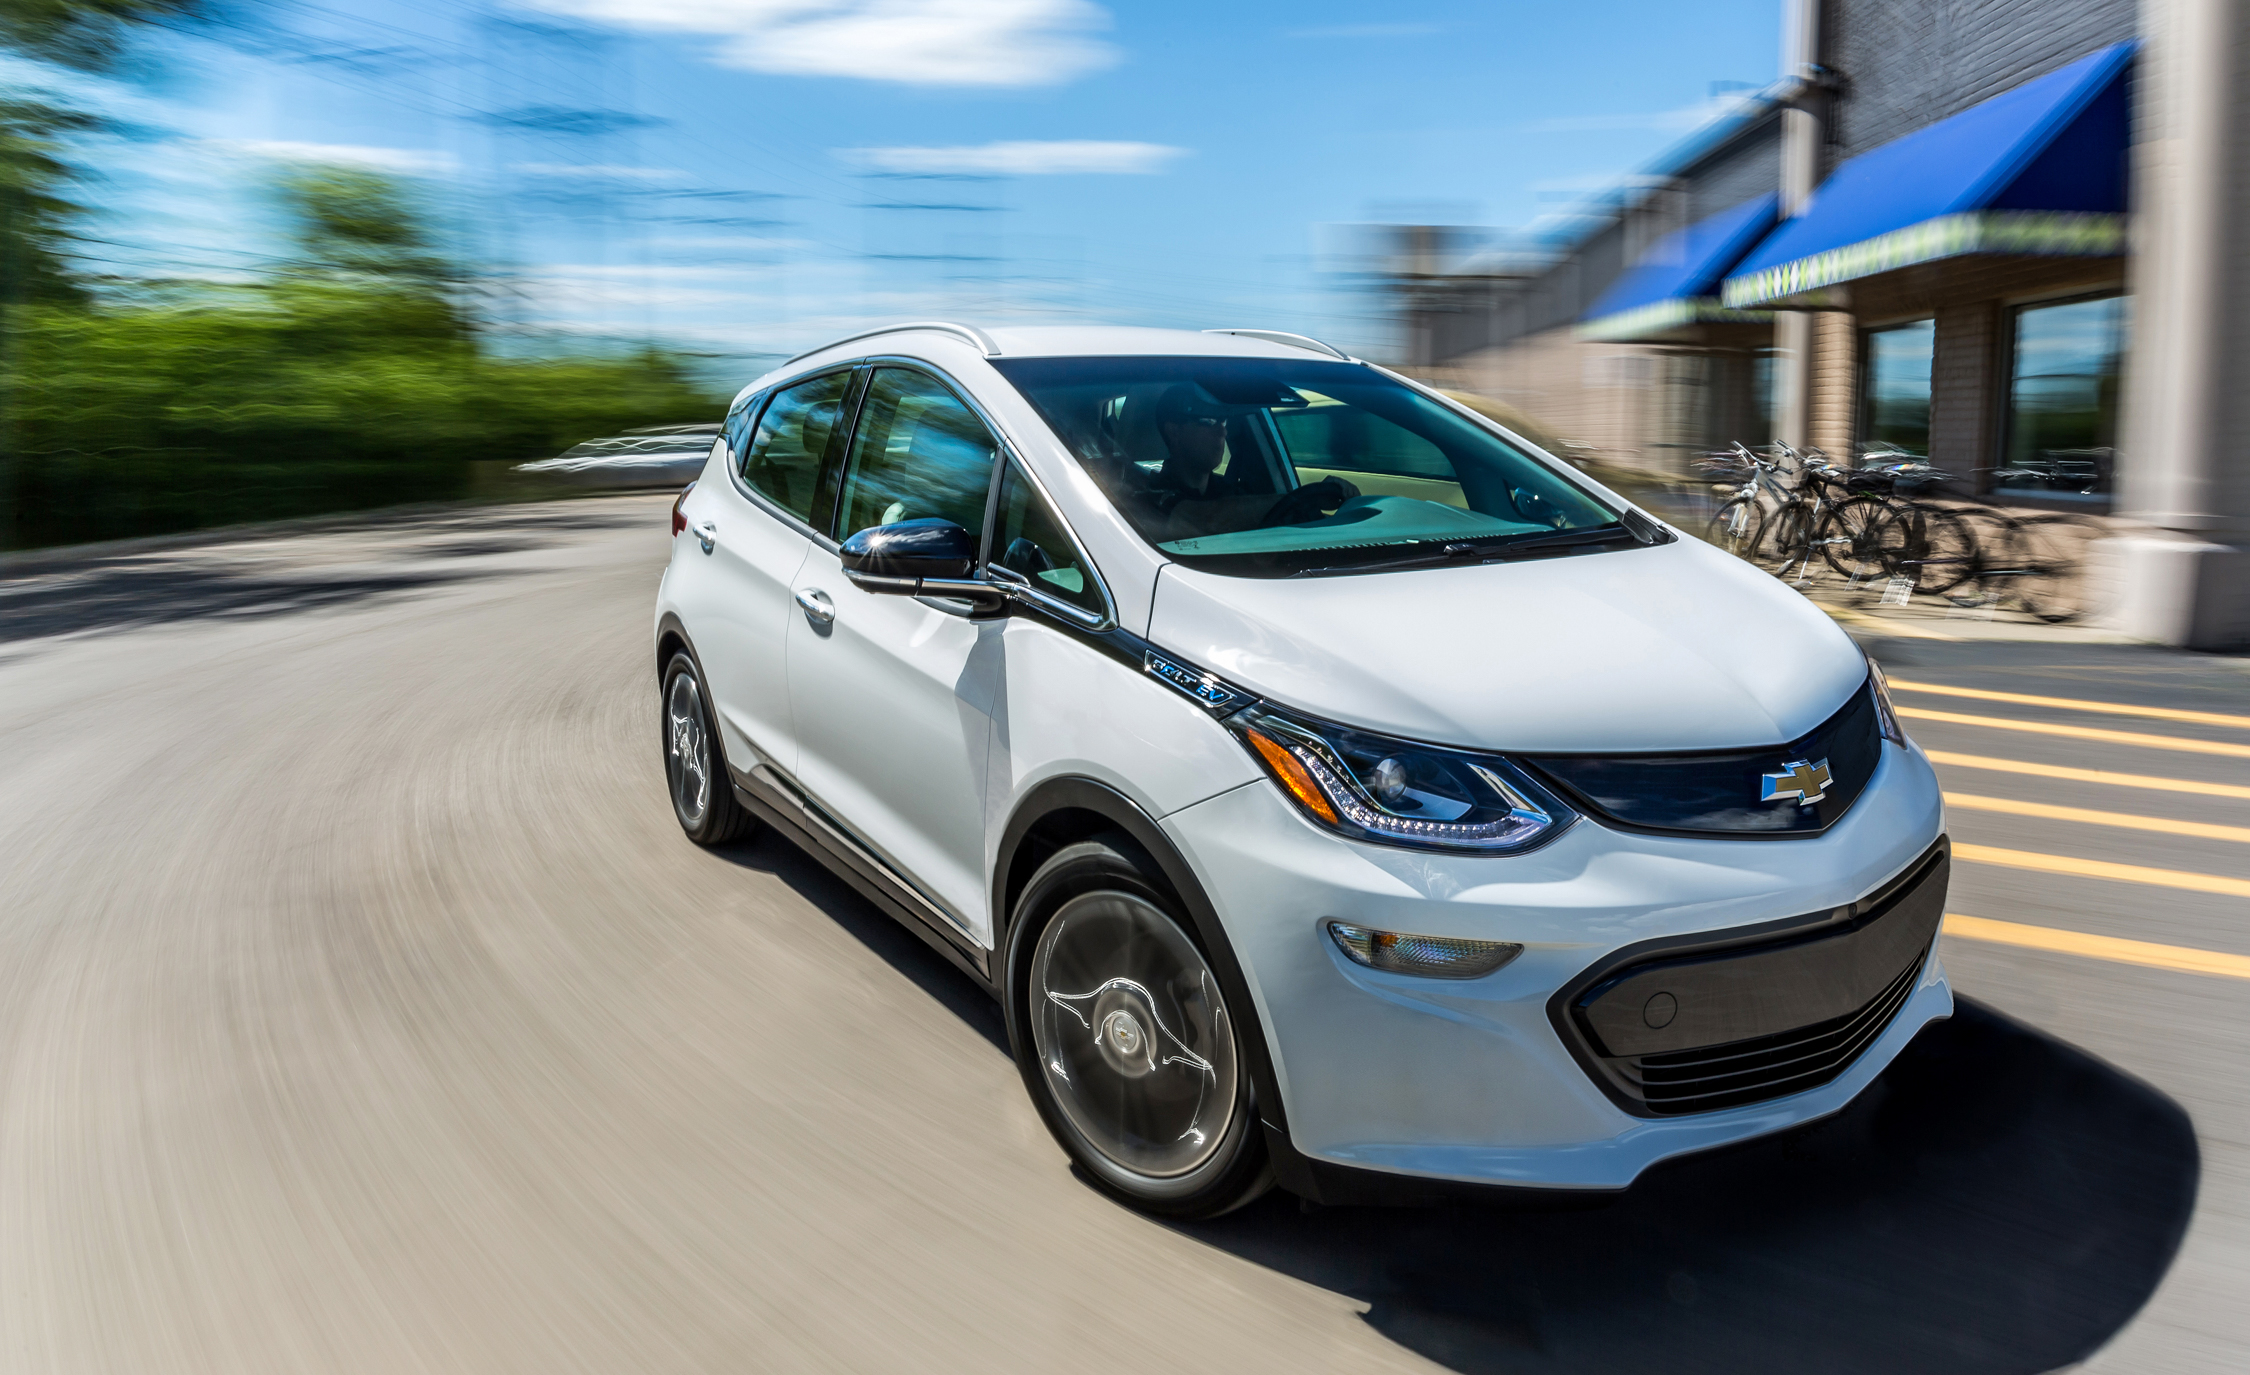 2017 Chevrolet Bolt Ev (Photo 1 of 12)